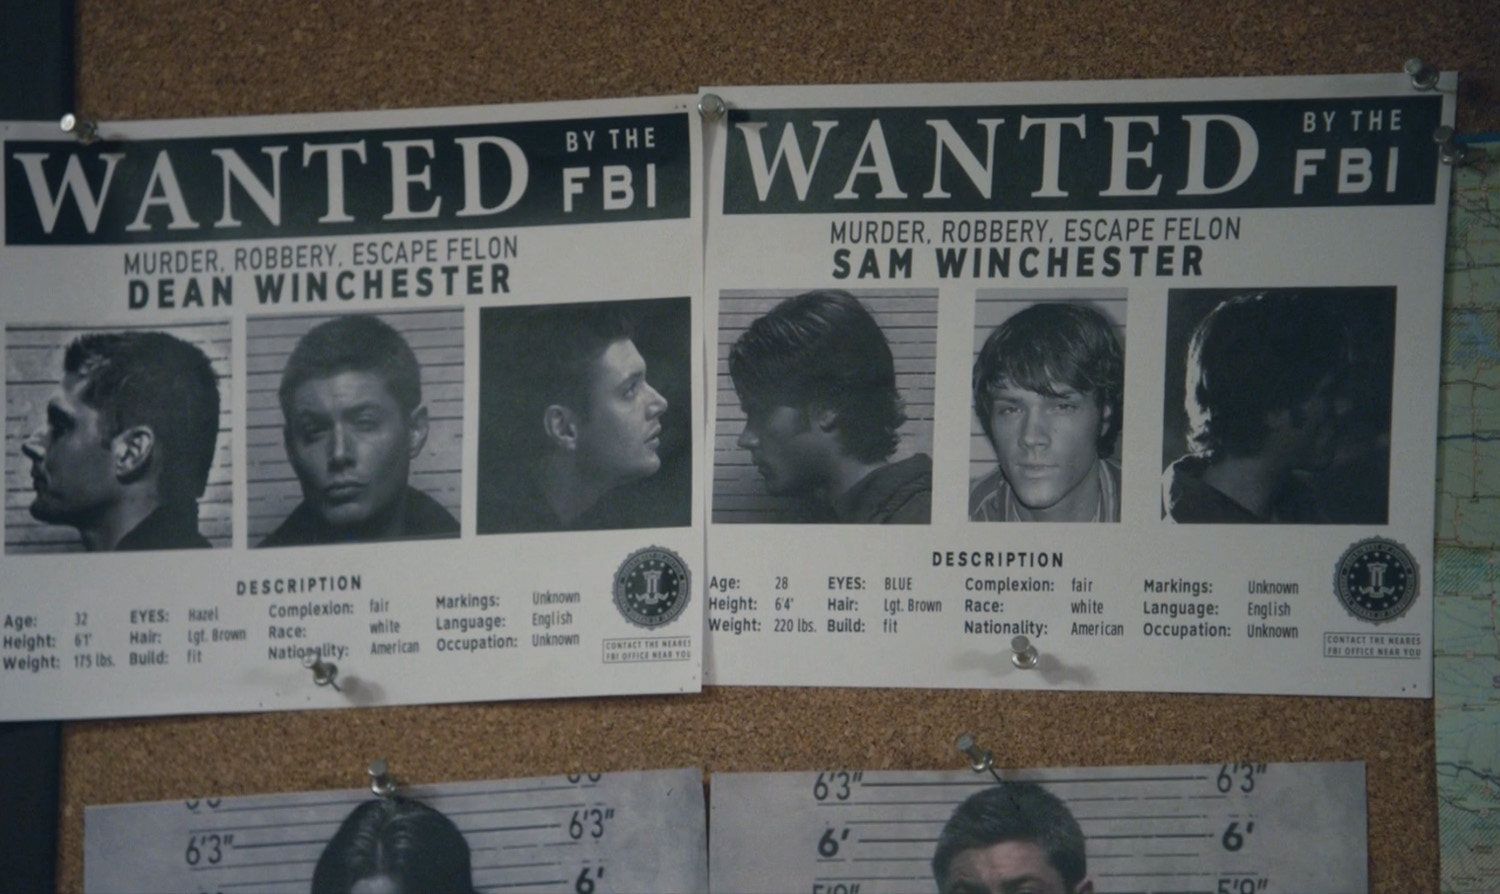 The Winchester Family Business - Fan Video of the Week